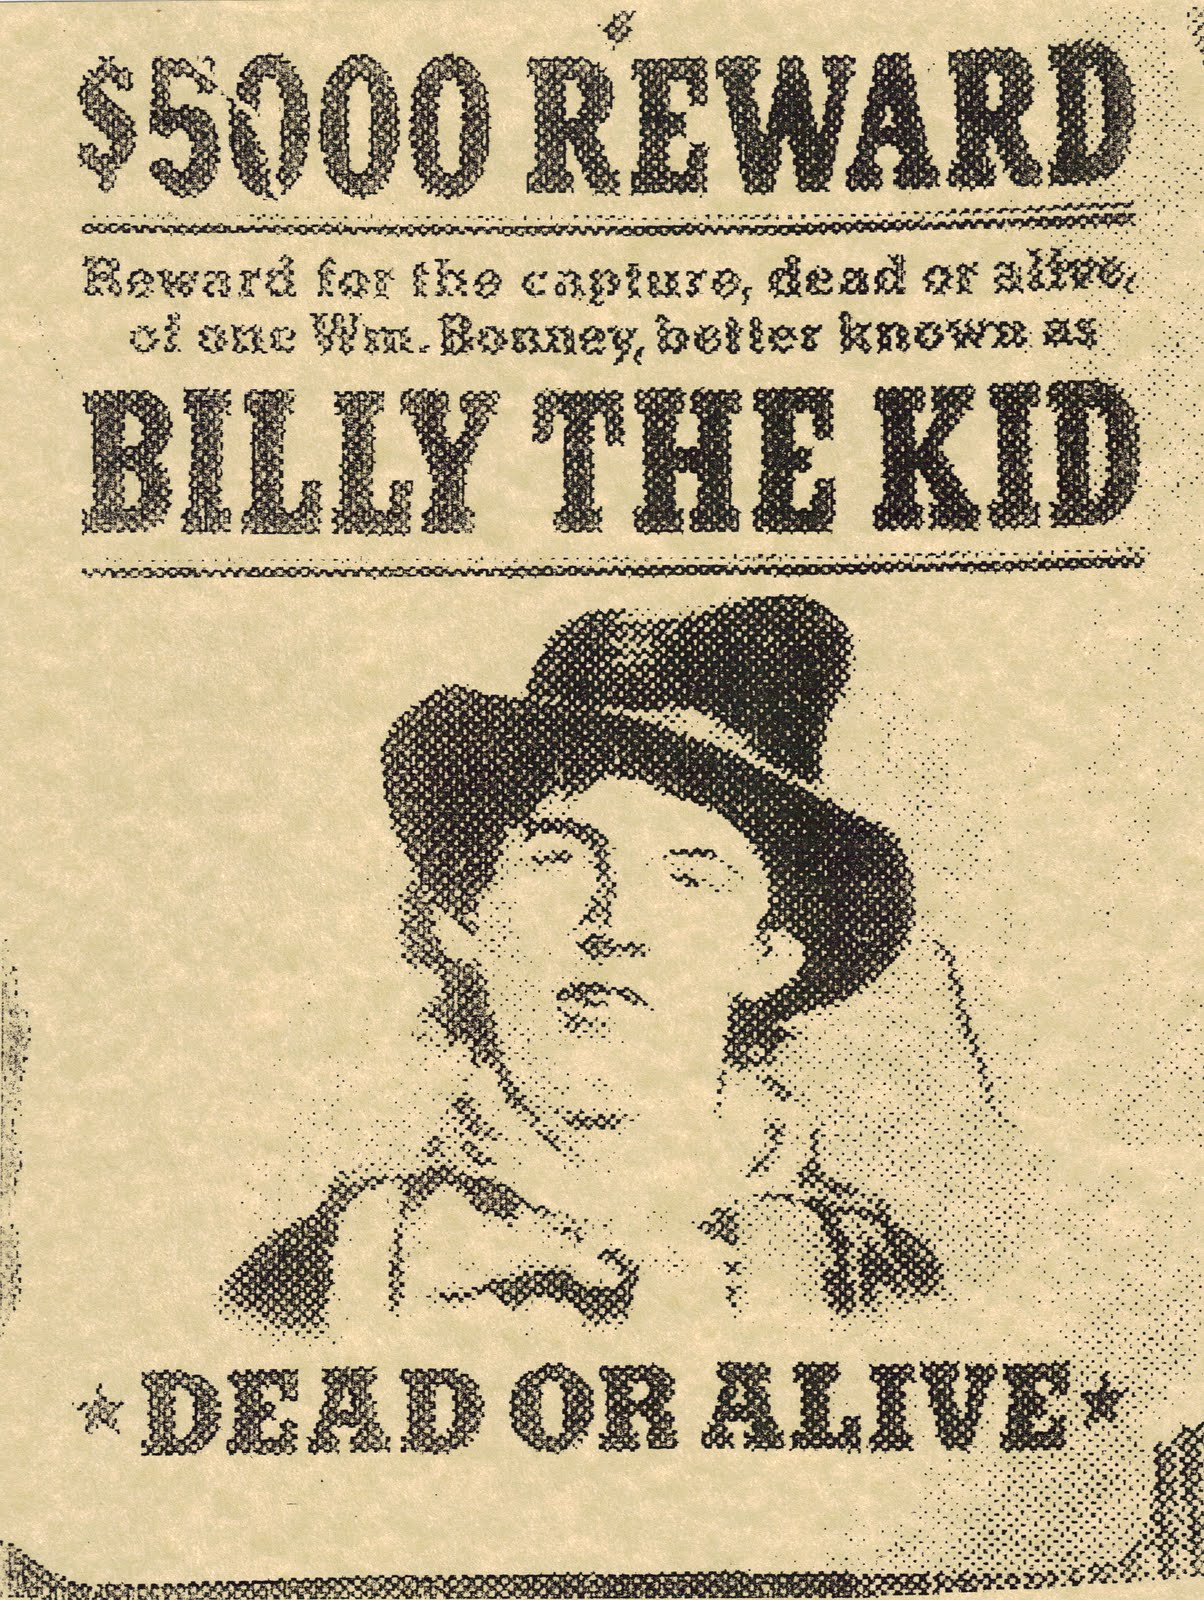 Billykidwanted